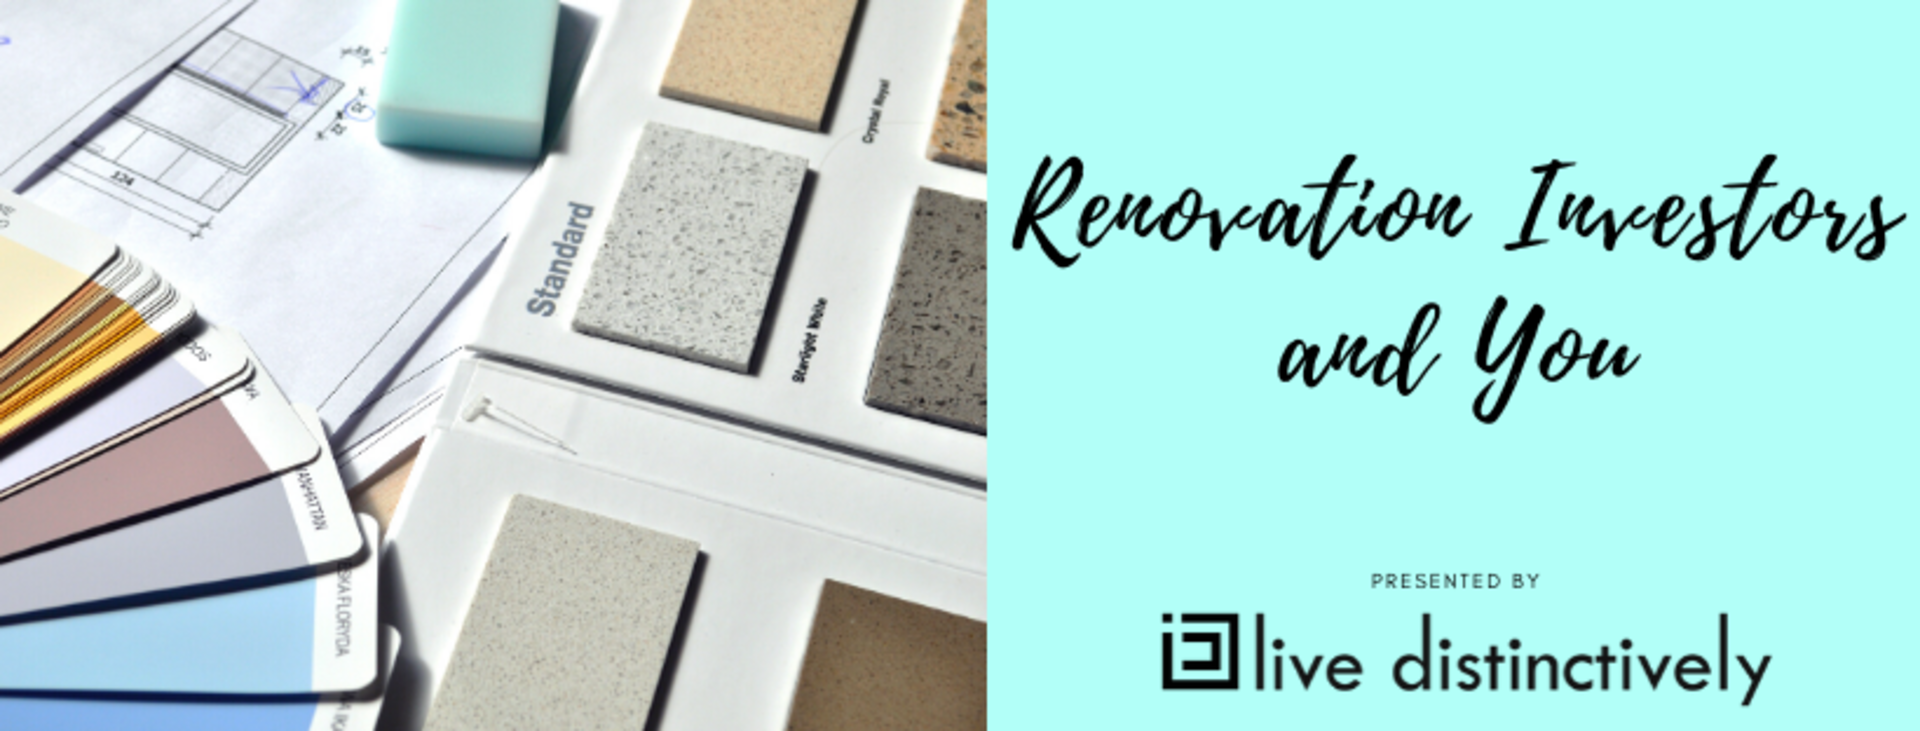 Renovation Investors and You